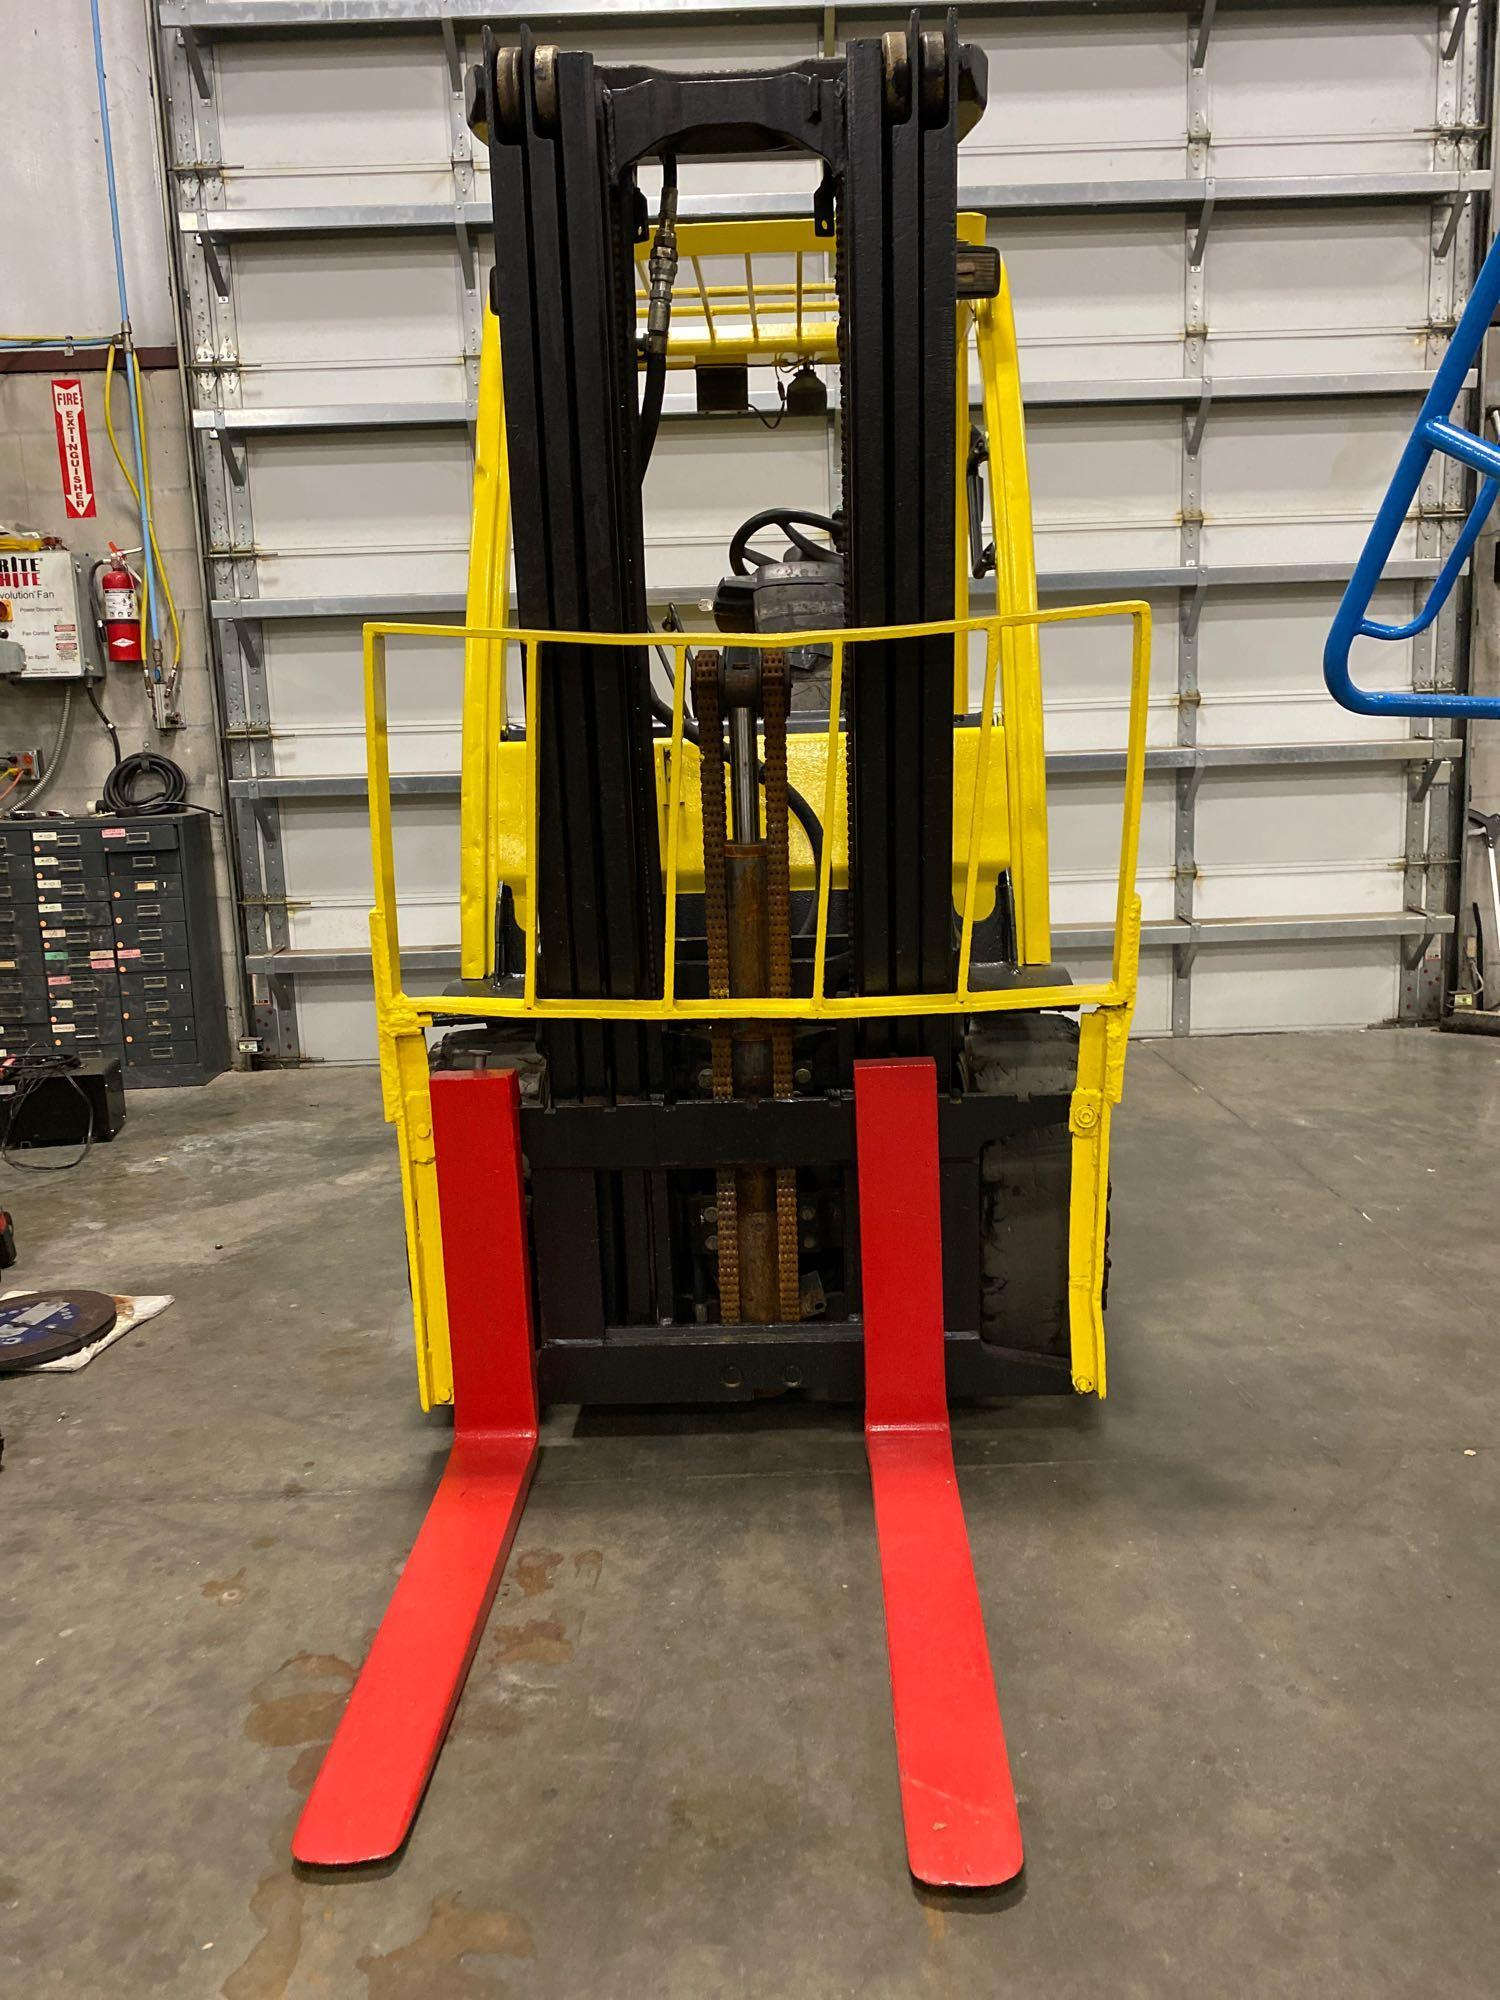 """HYSTER H70FT FORKLIFT, APPROX. 7,000 LB CAPACITY, 181.9"""" HEIGHT CAP, TILT, RUNS AND OPERATES - Image 6 of 10"""